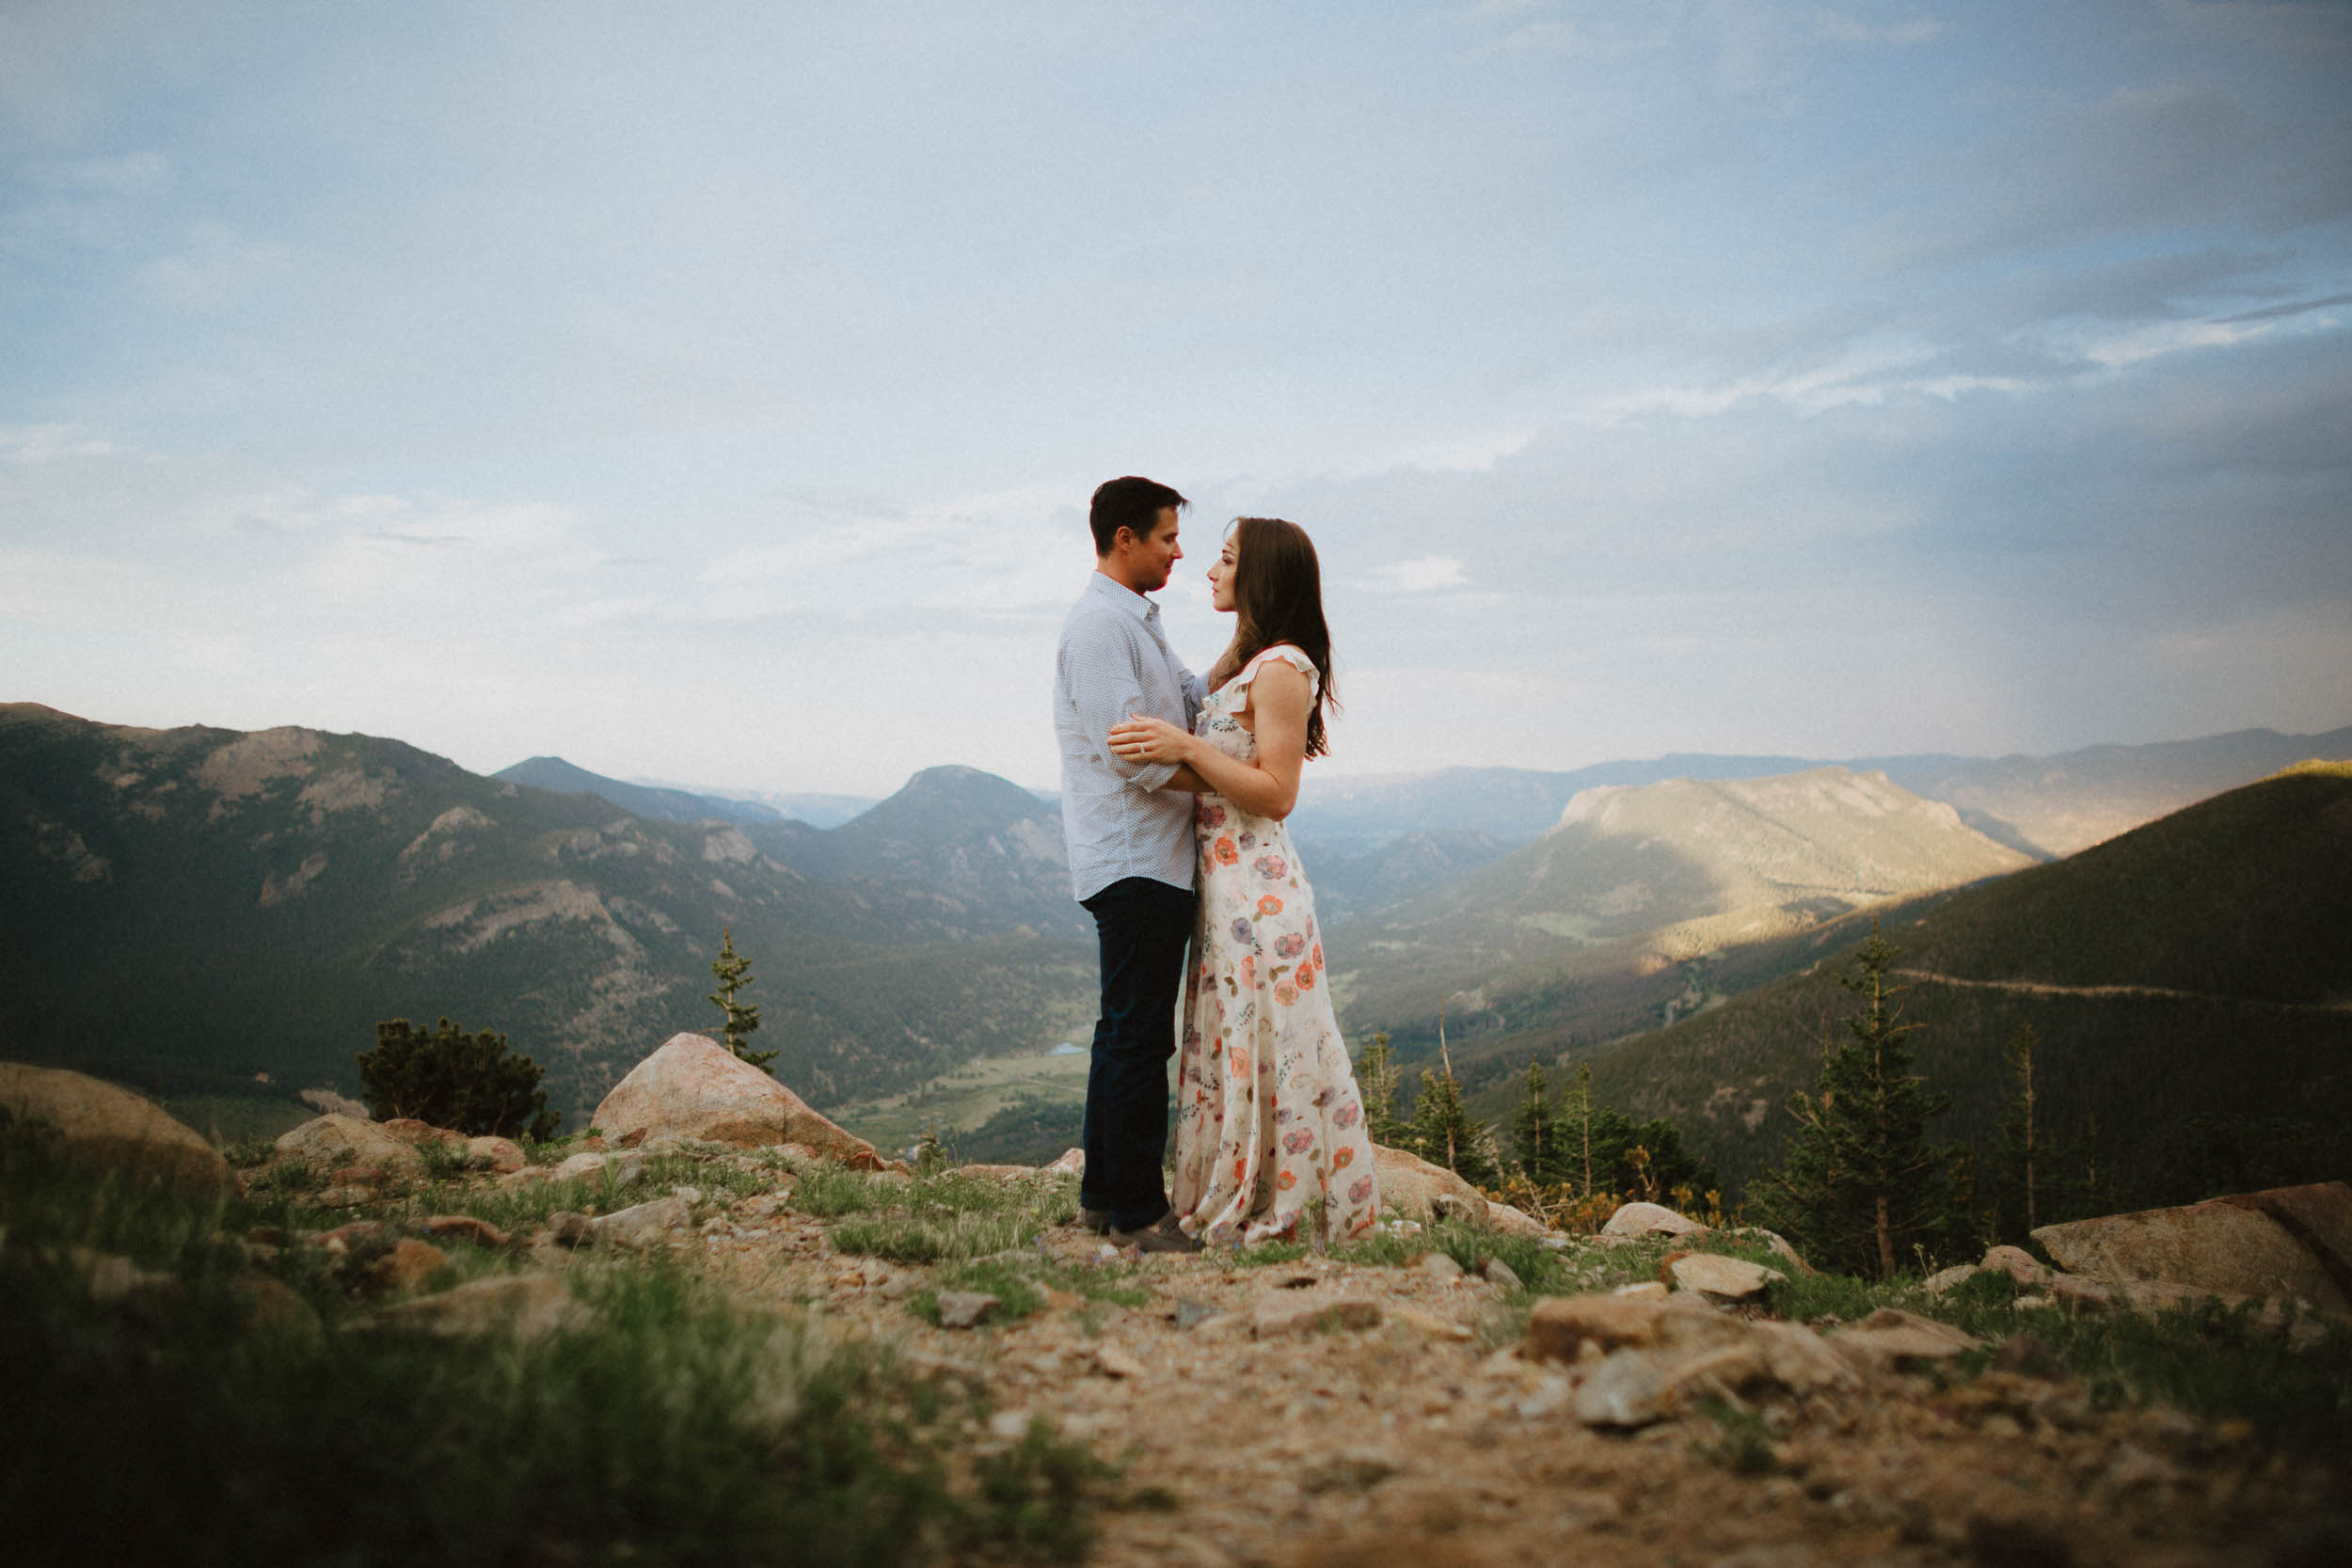 Rocky-Mountain-National-Park-Colorado-Engagement-032@2x.jpg